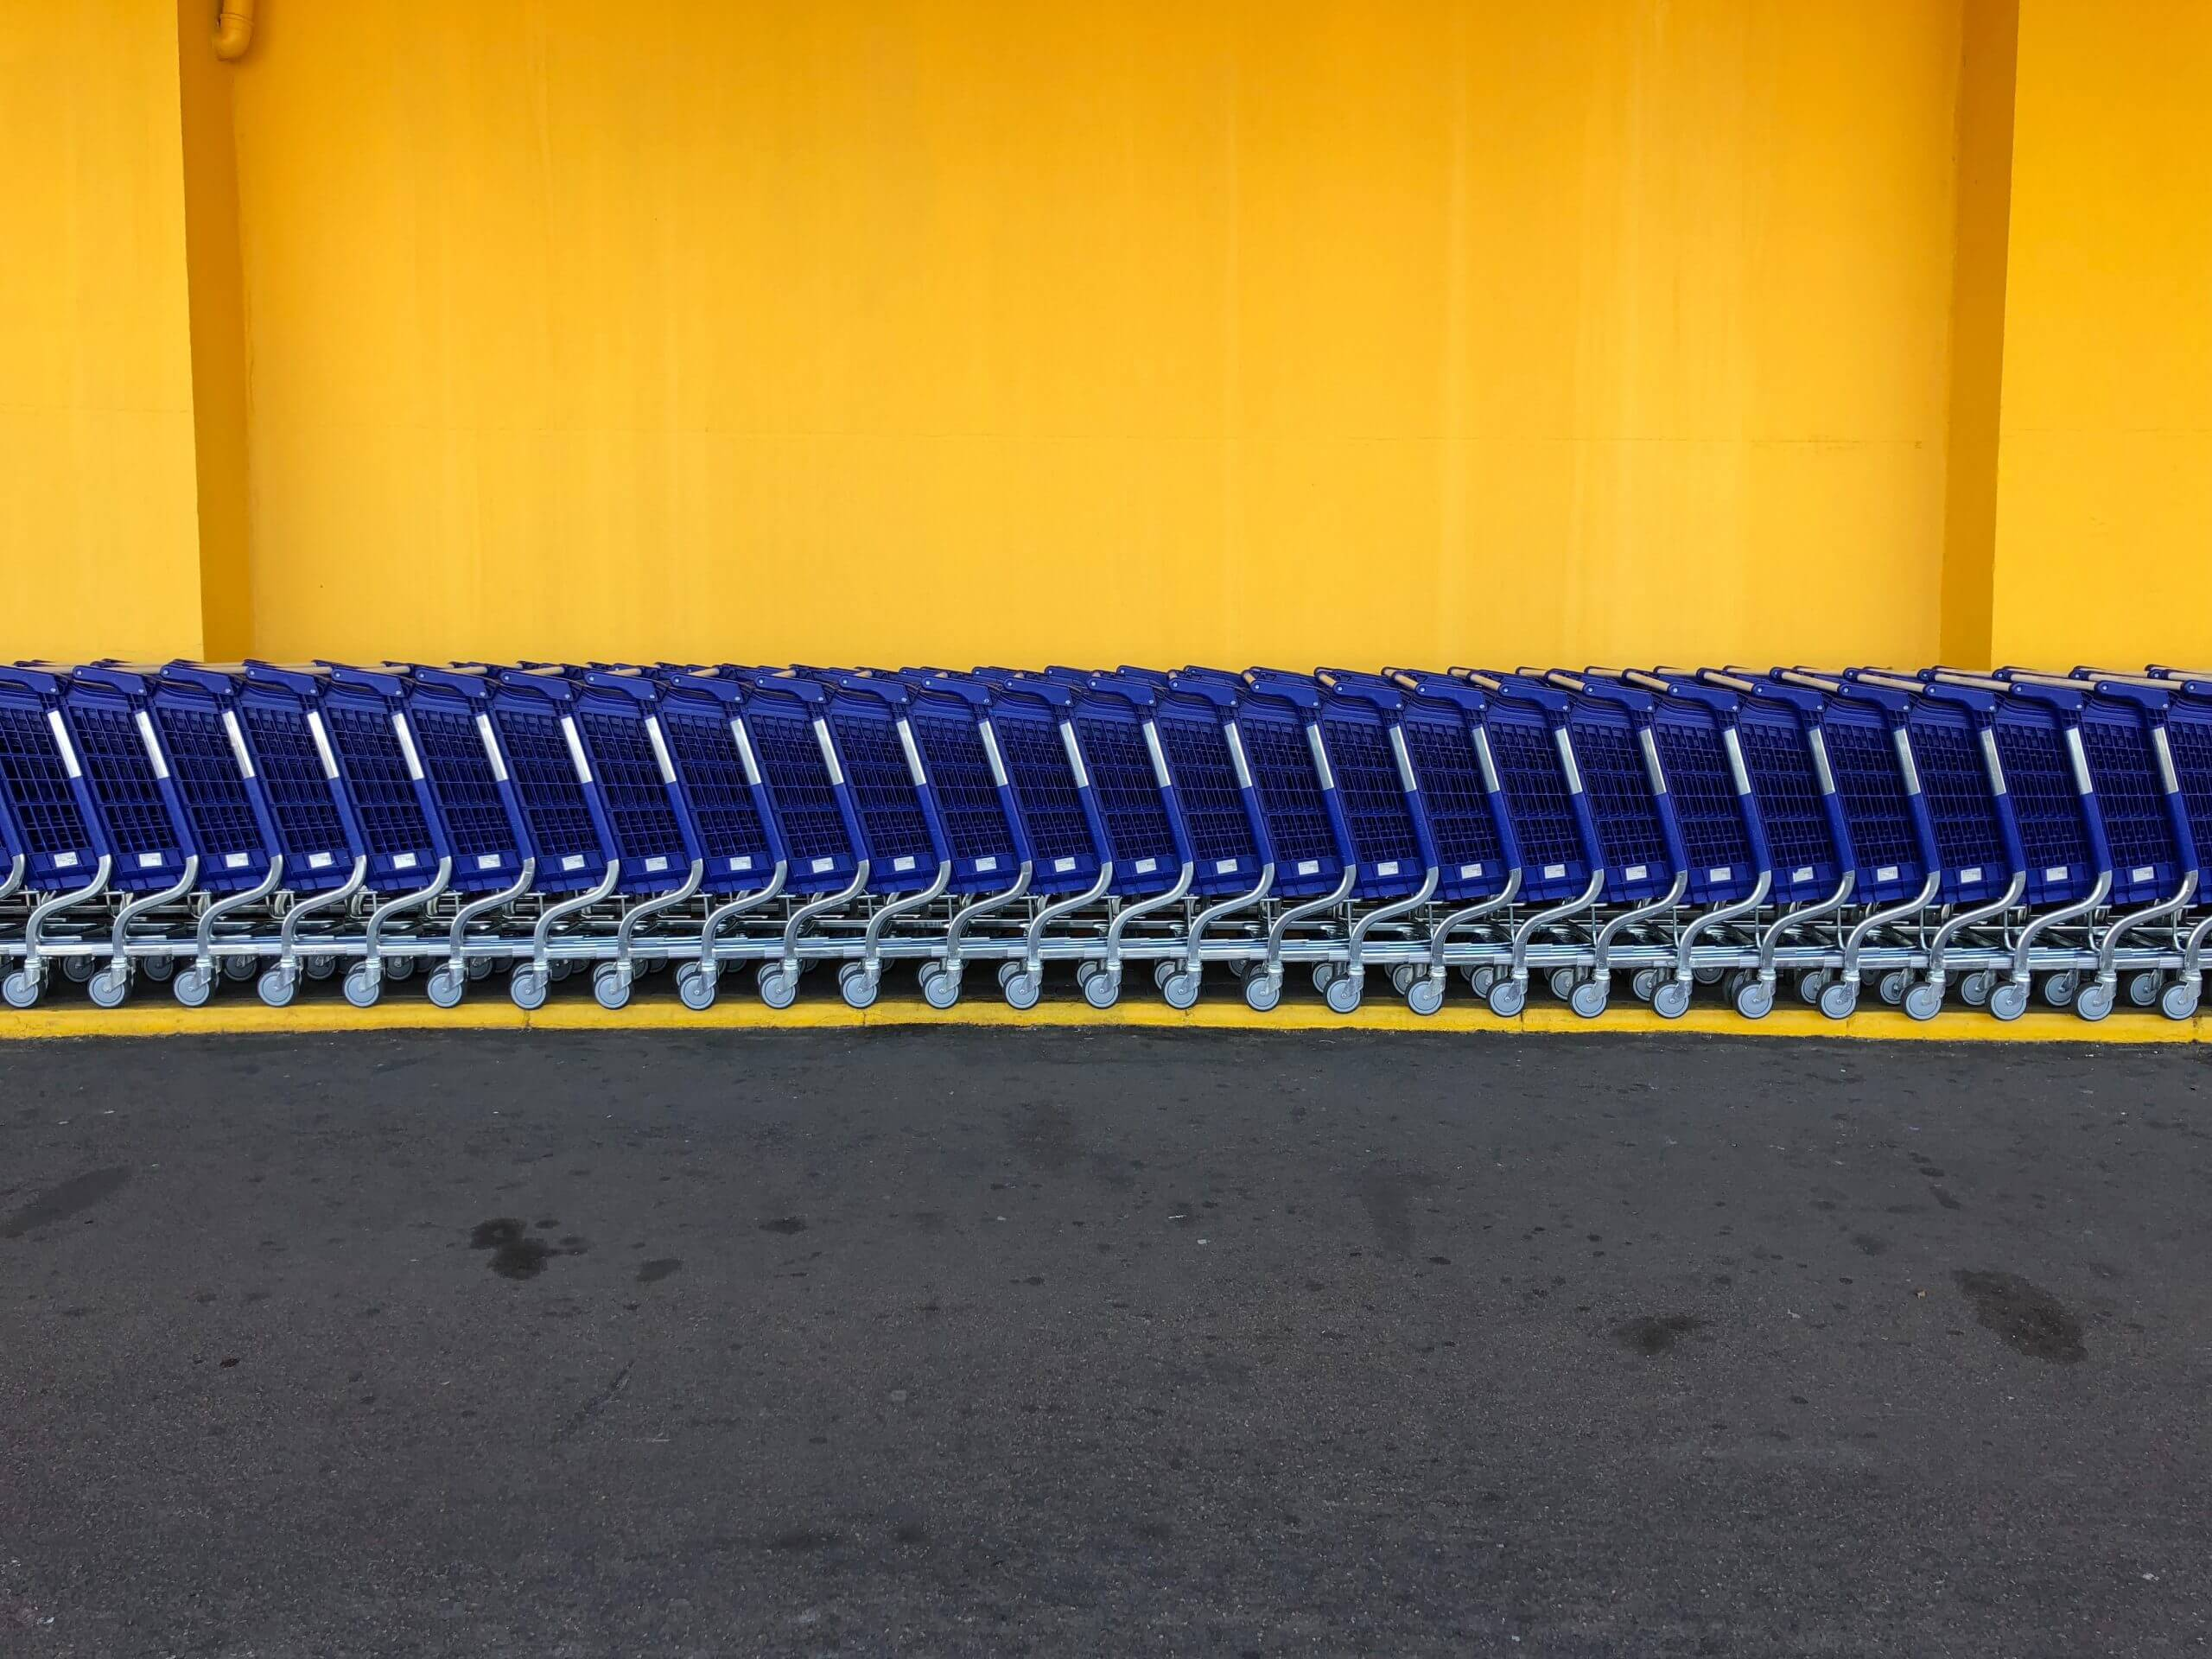 Arranged blue shooping carts in front of yellow wall